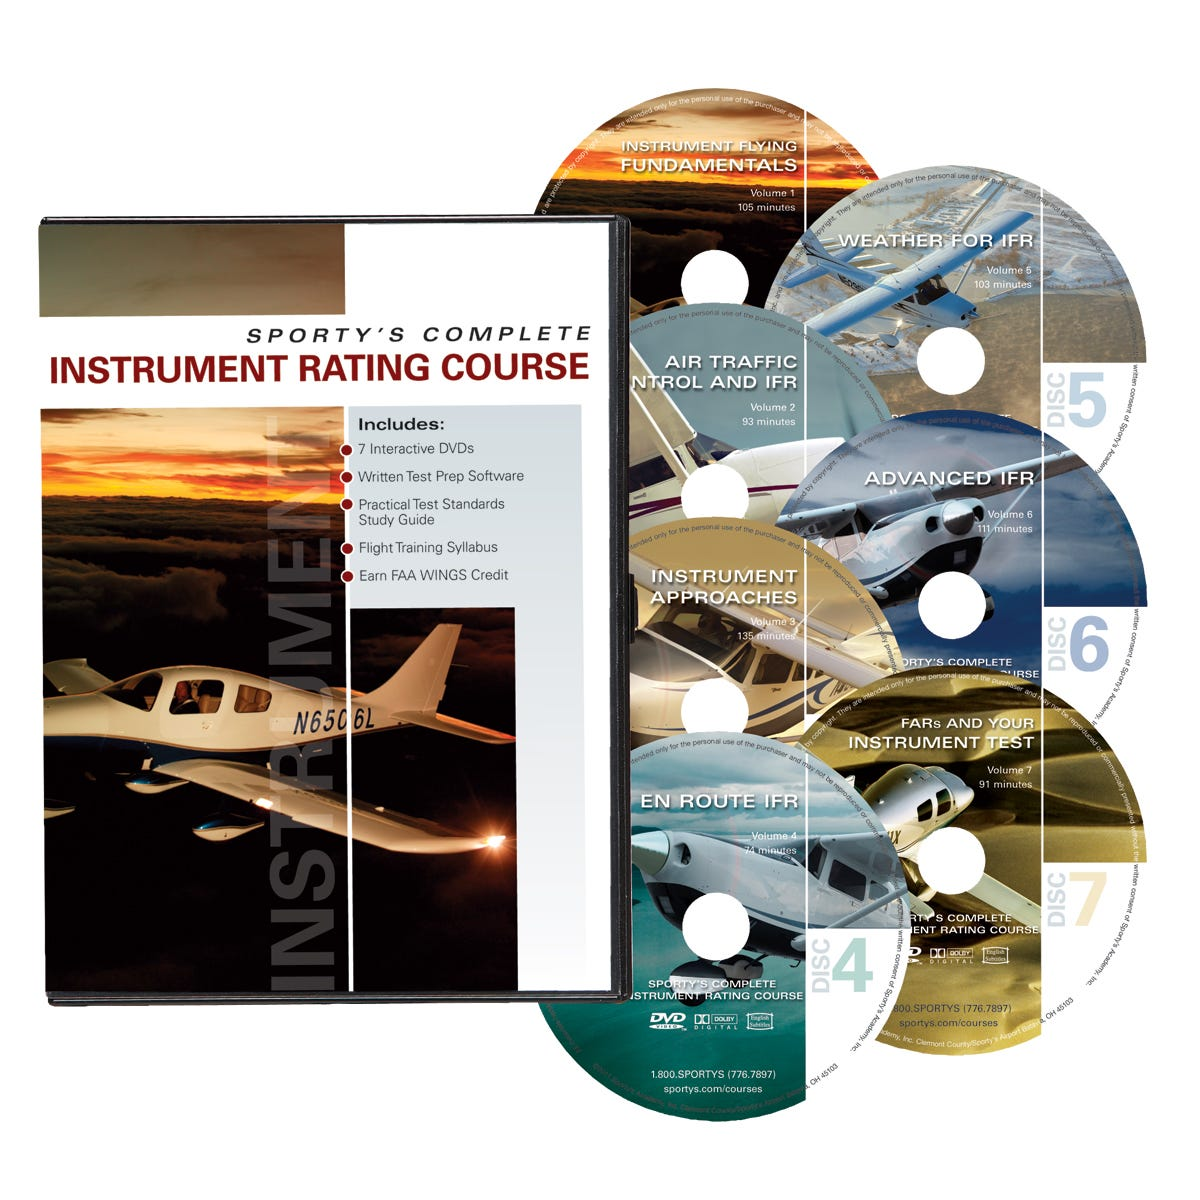 Sportys Instrument Rating Course Dvd From Pilot Shop Telex Intercom Wiring Diagram